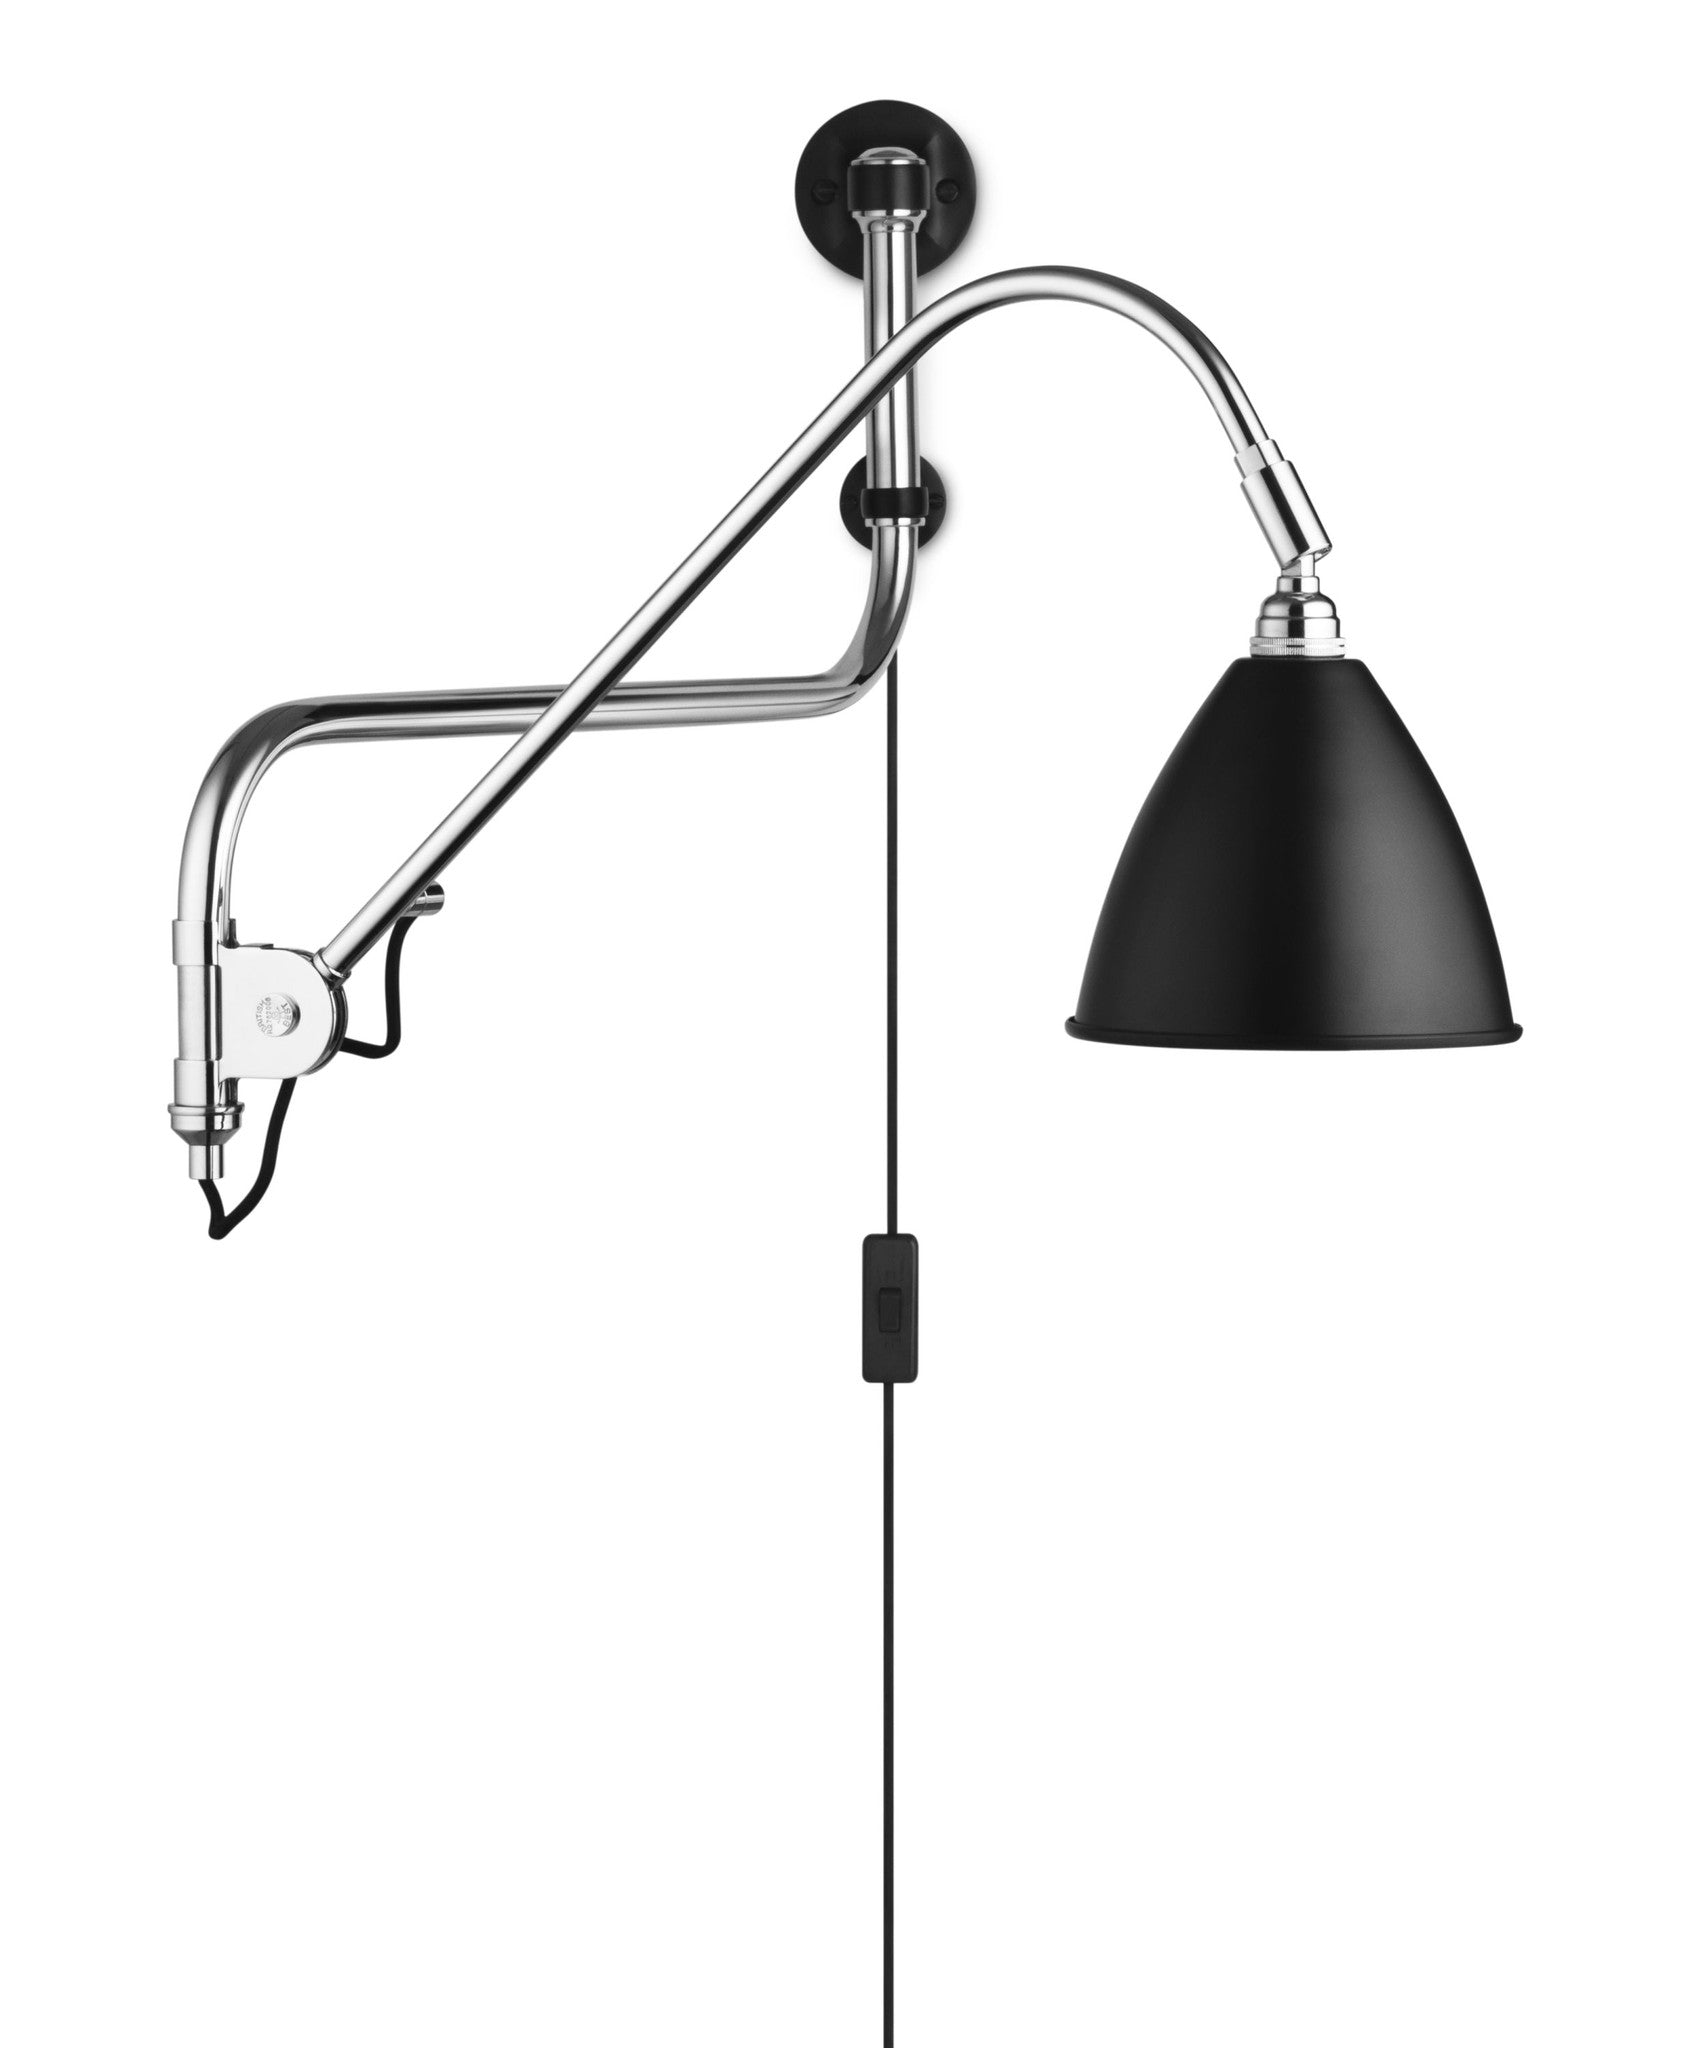 Bestlite BL10 Wall Lamp - Ø16 - Crome Base, Black fra GUBI